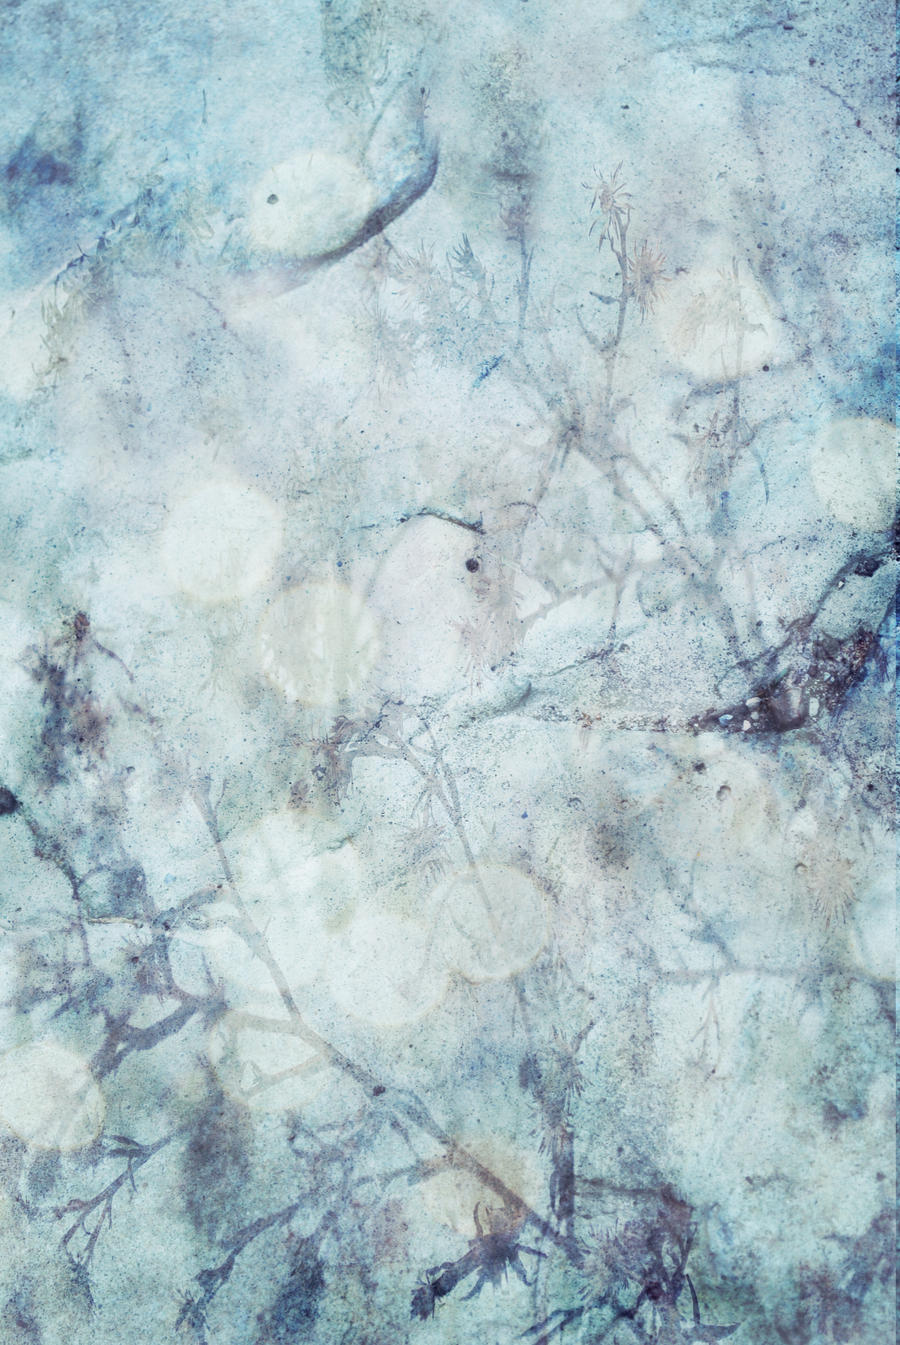 Ice and Snow Texture 2